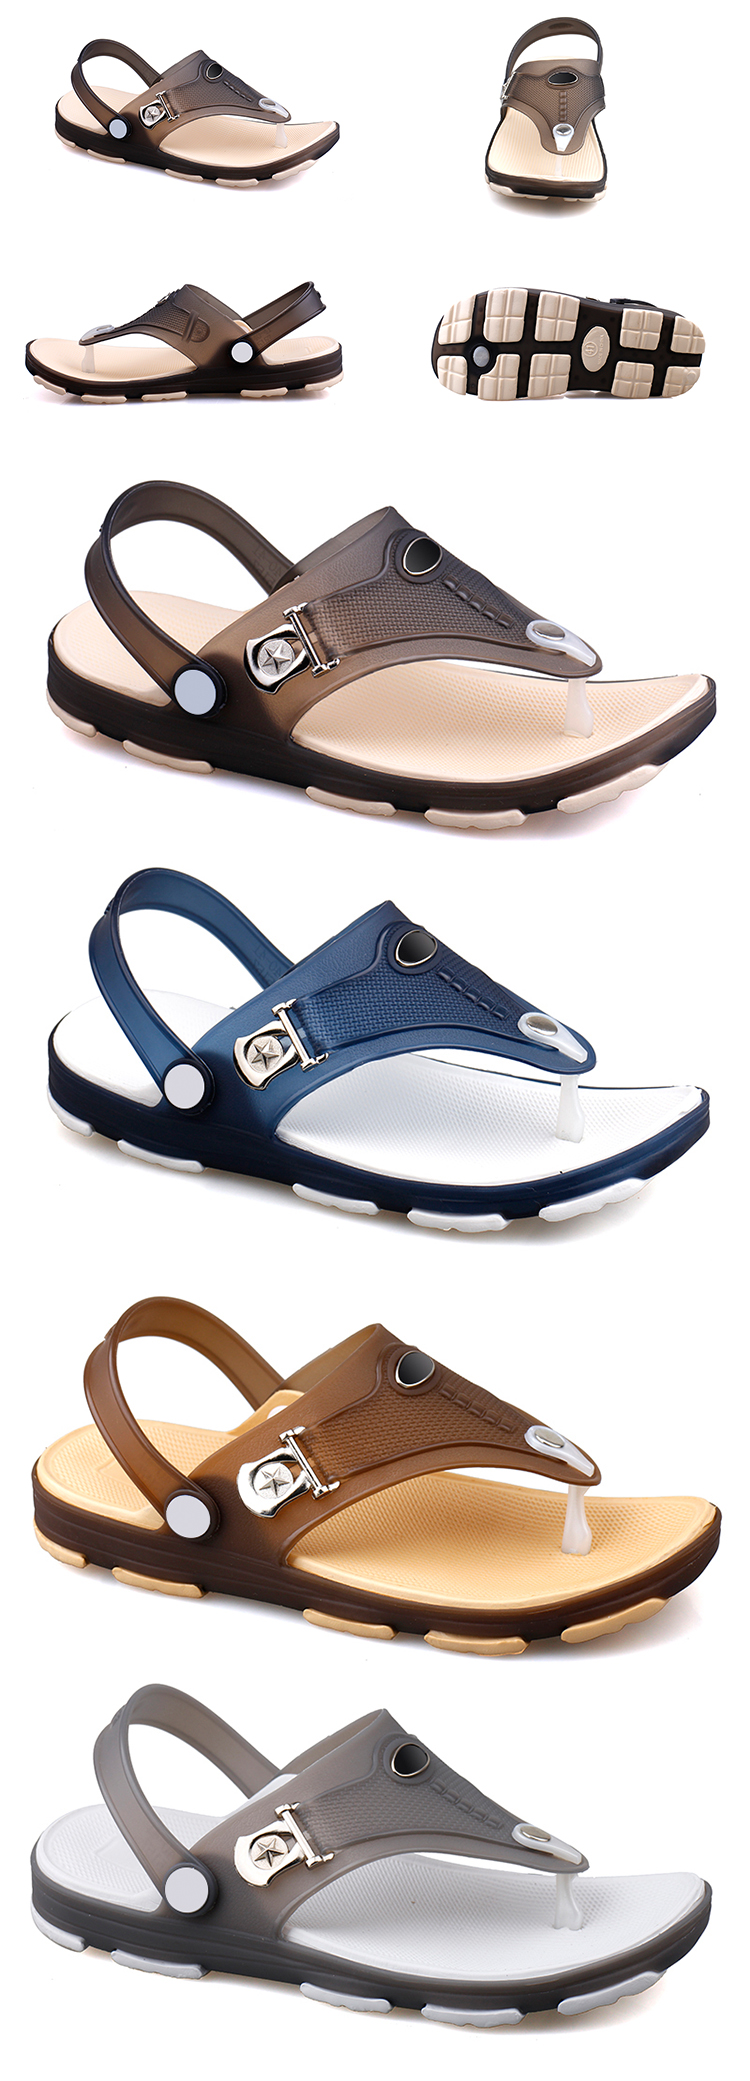 0ec1786be New Design Thong Jelly Shoes Clear Pvc Footwear Men Beach Sandals ...